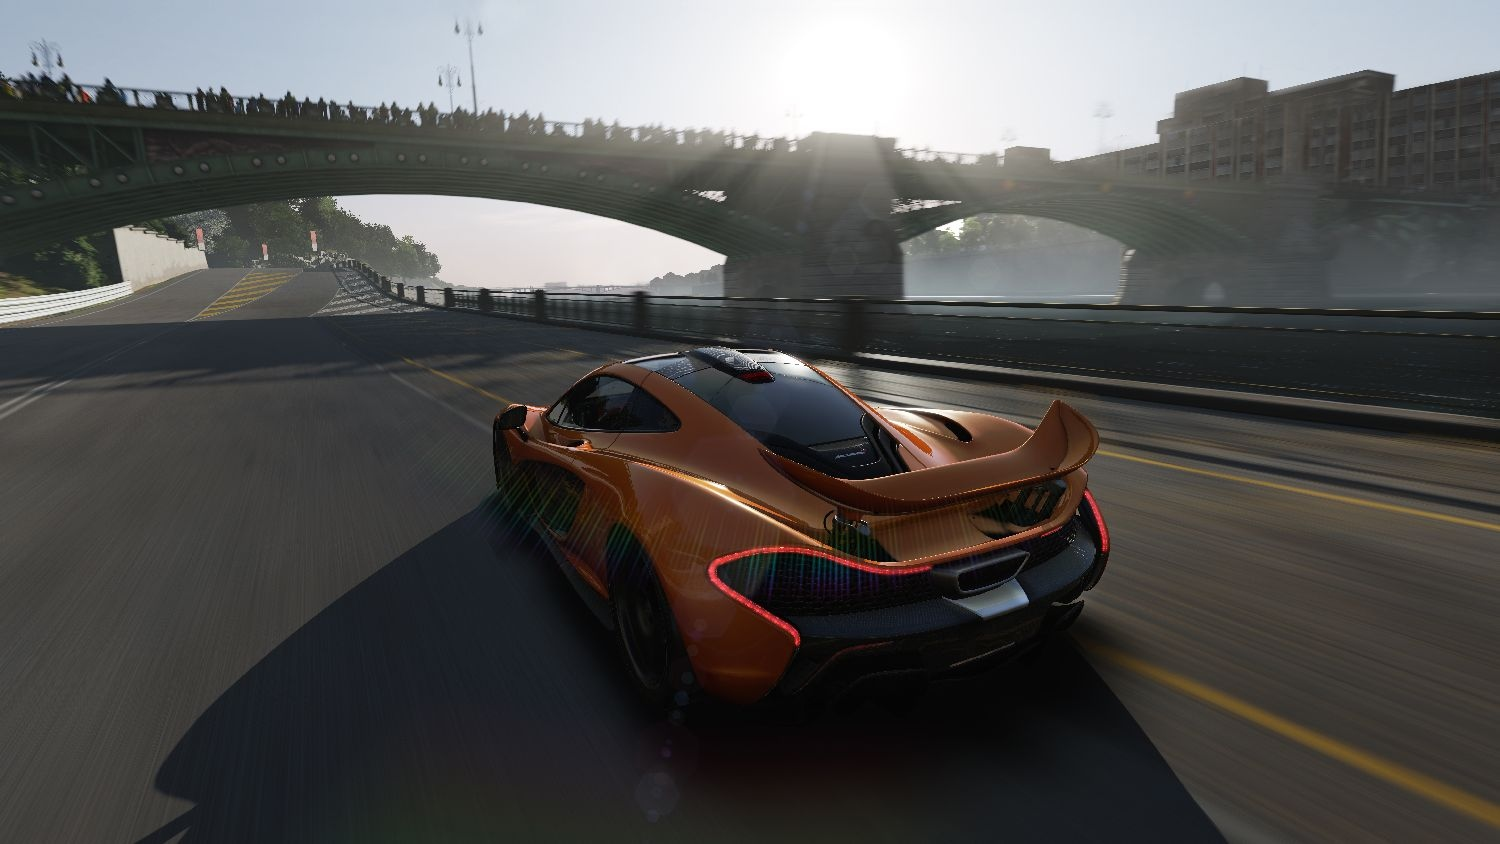 Sony Claims Games Like DriveClub Can't Be Effectively Tested